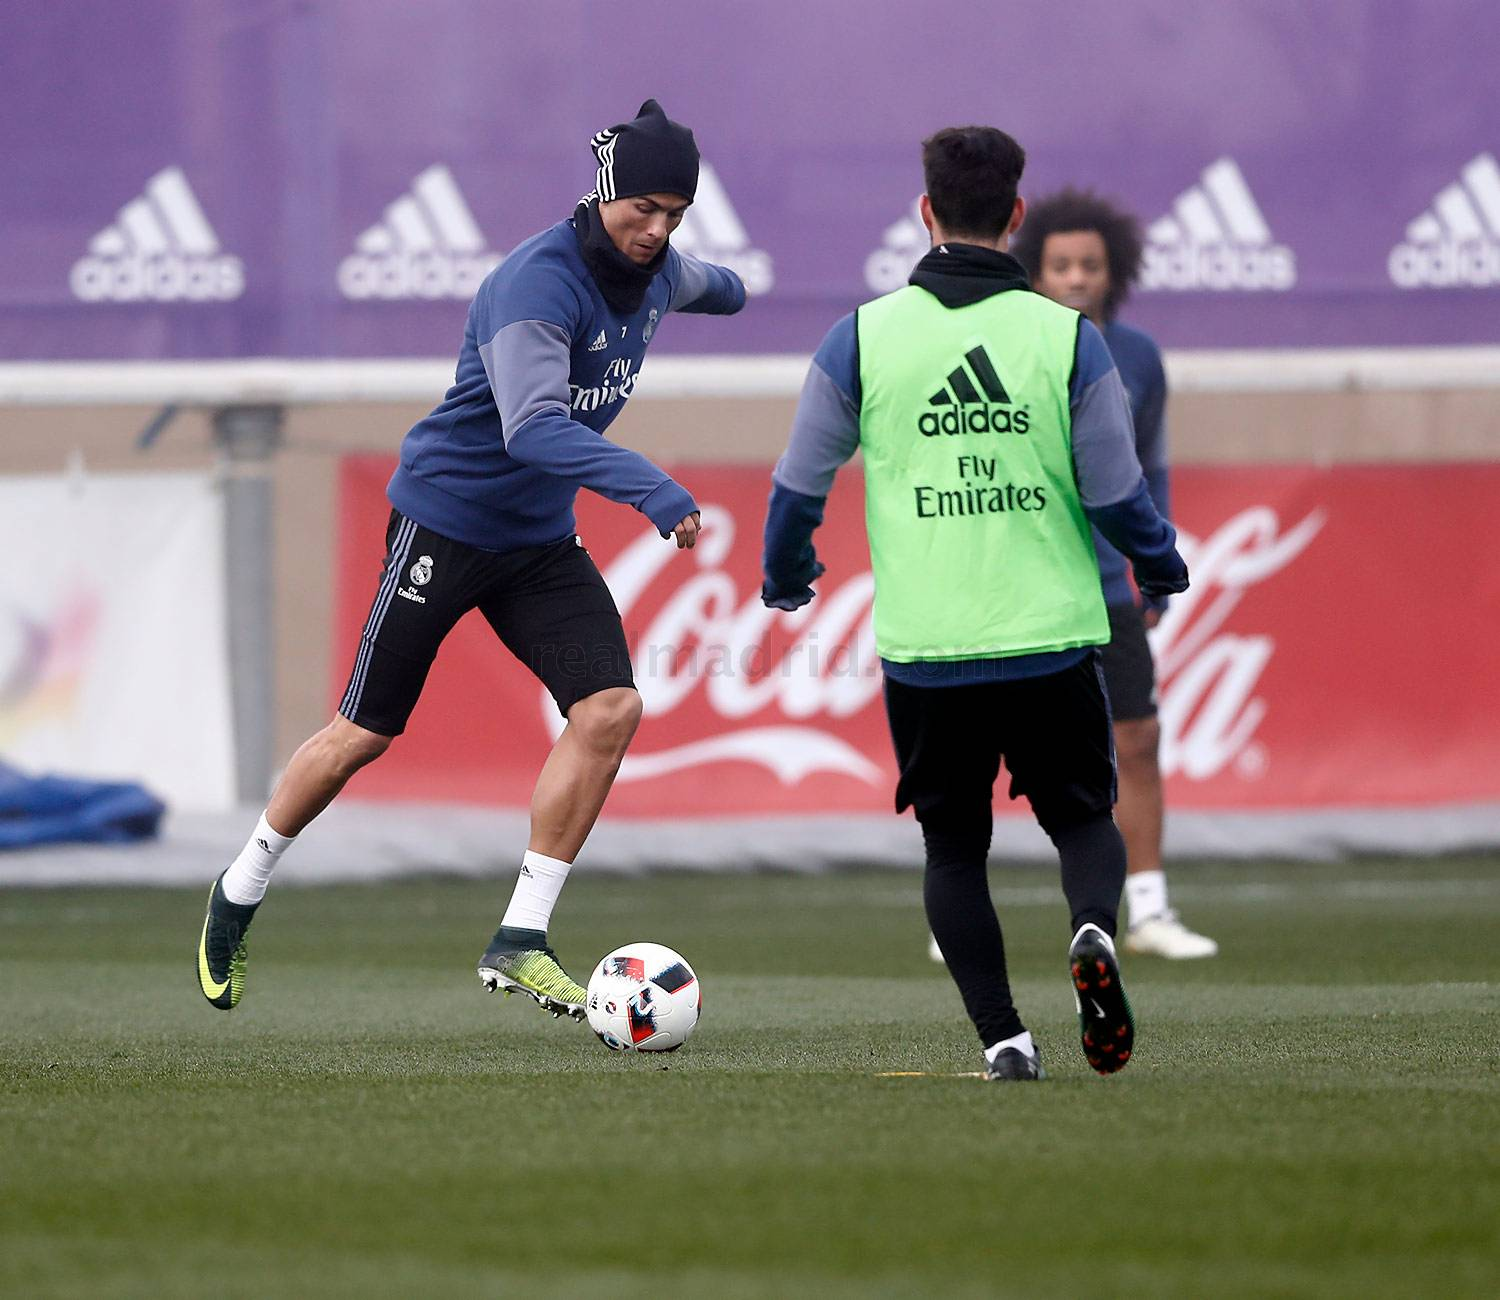 Real Madrid - Entrenamiento del Real Madrid - 31-12-2016